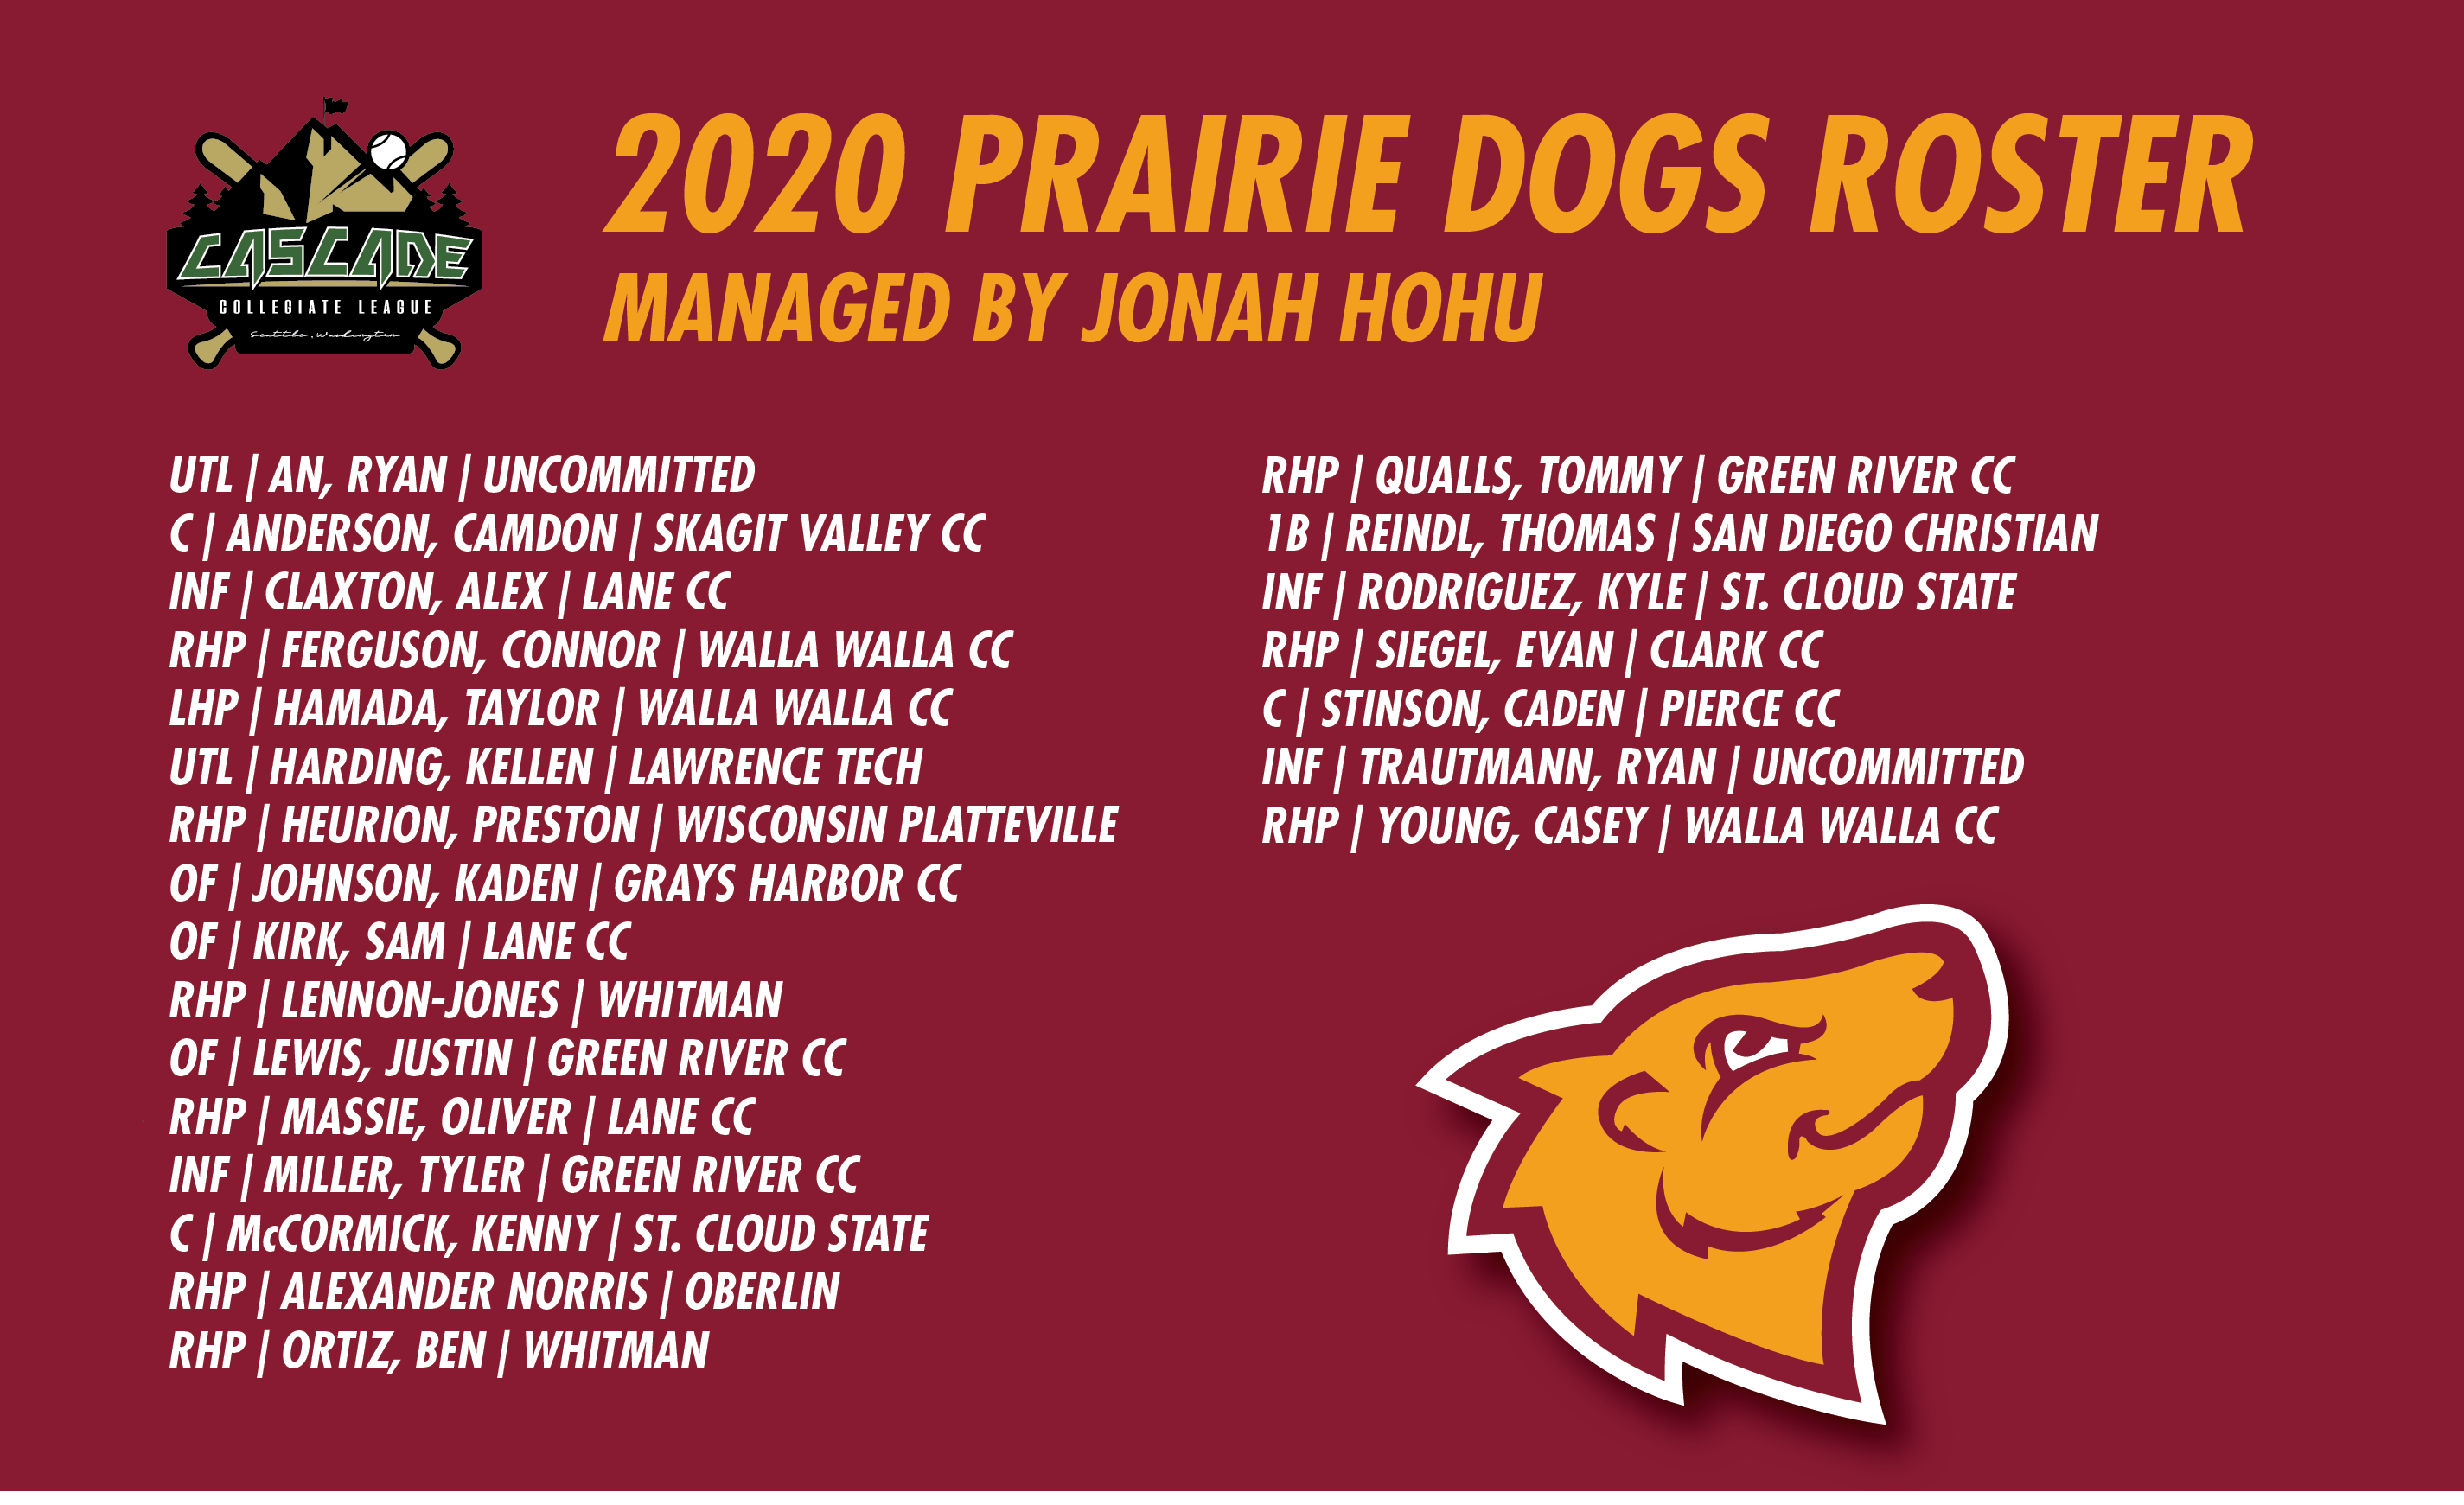 2020 PRAIRIE DOGS ROSTER